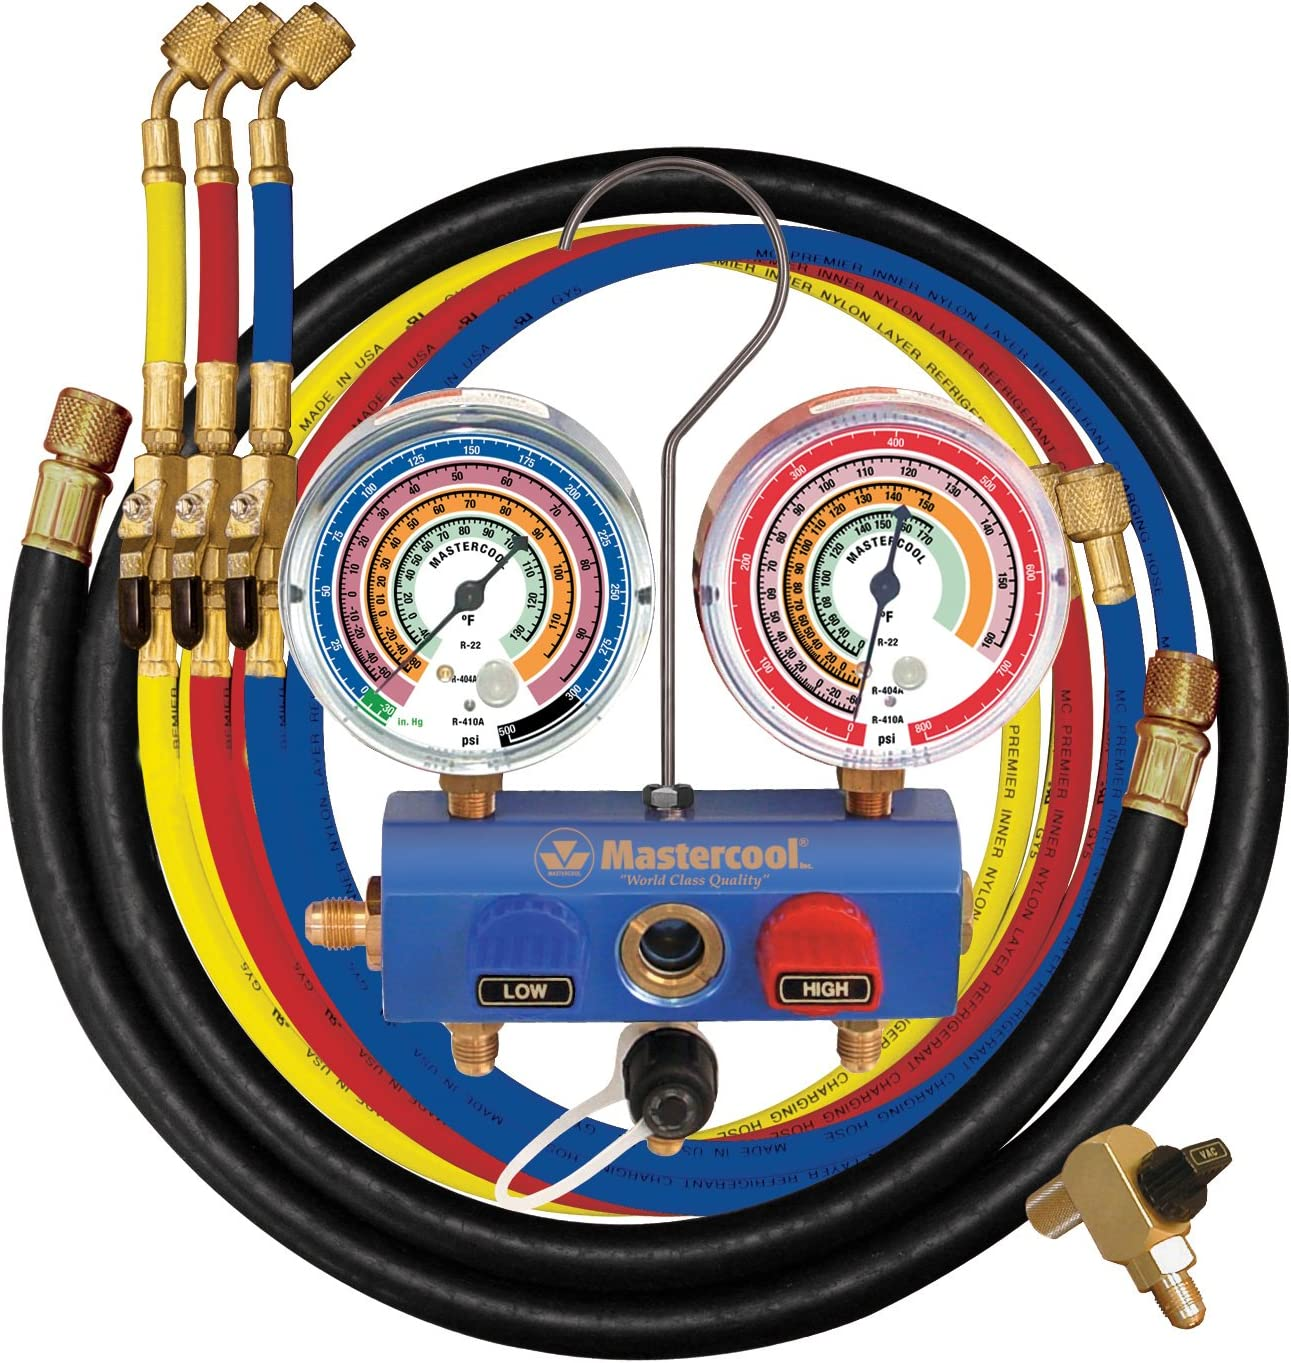 "MASTERCOOL (59861 Blue R410A, R22, R404A 3-Way Manifold Set with 3-1/8"" Gauges and 60"" Hoses"